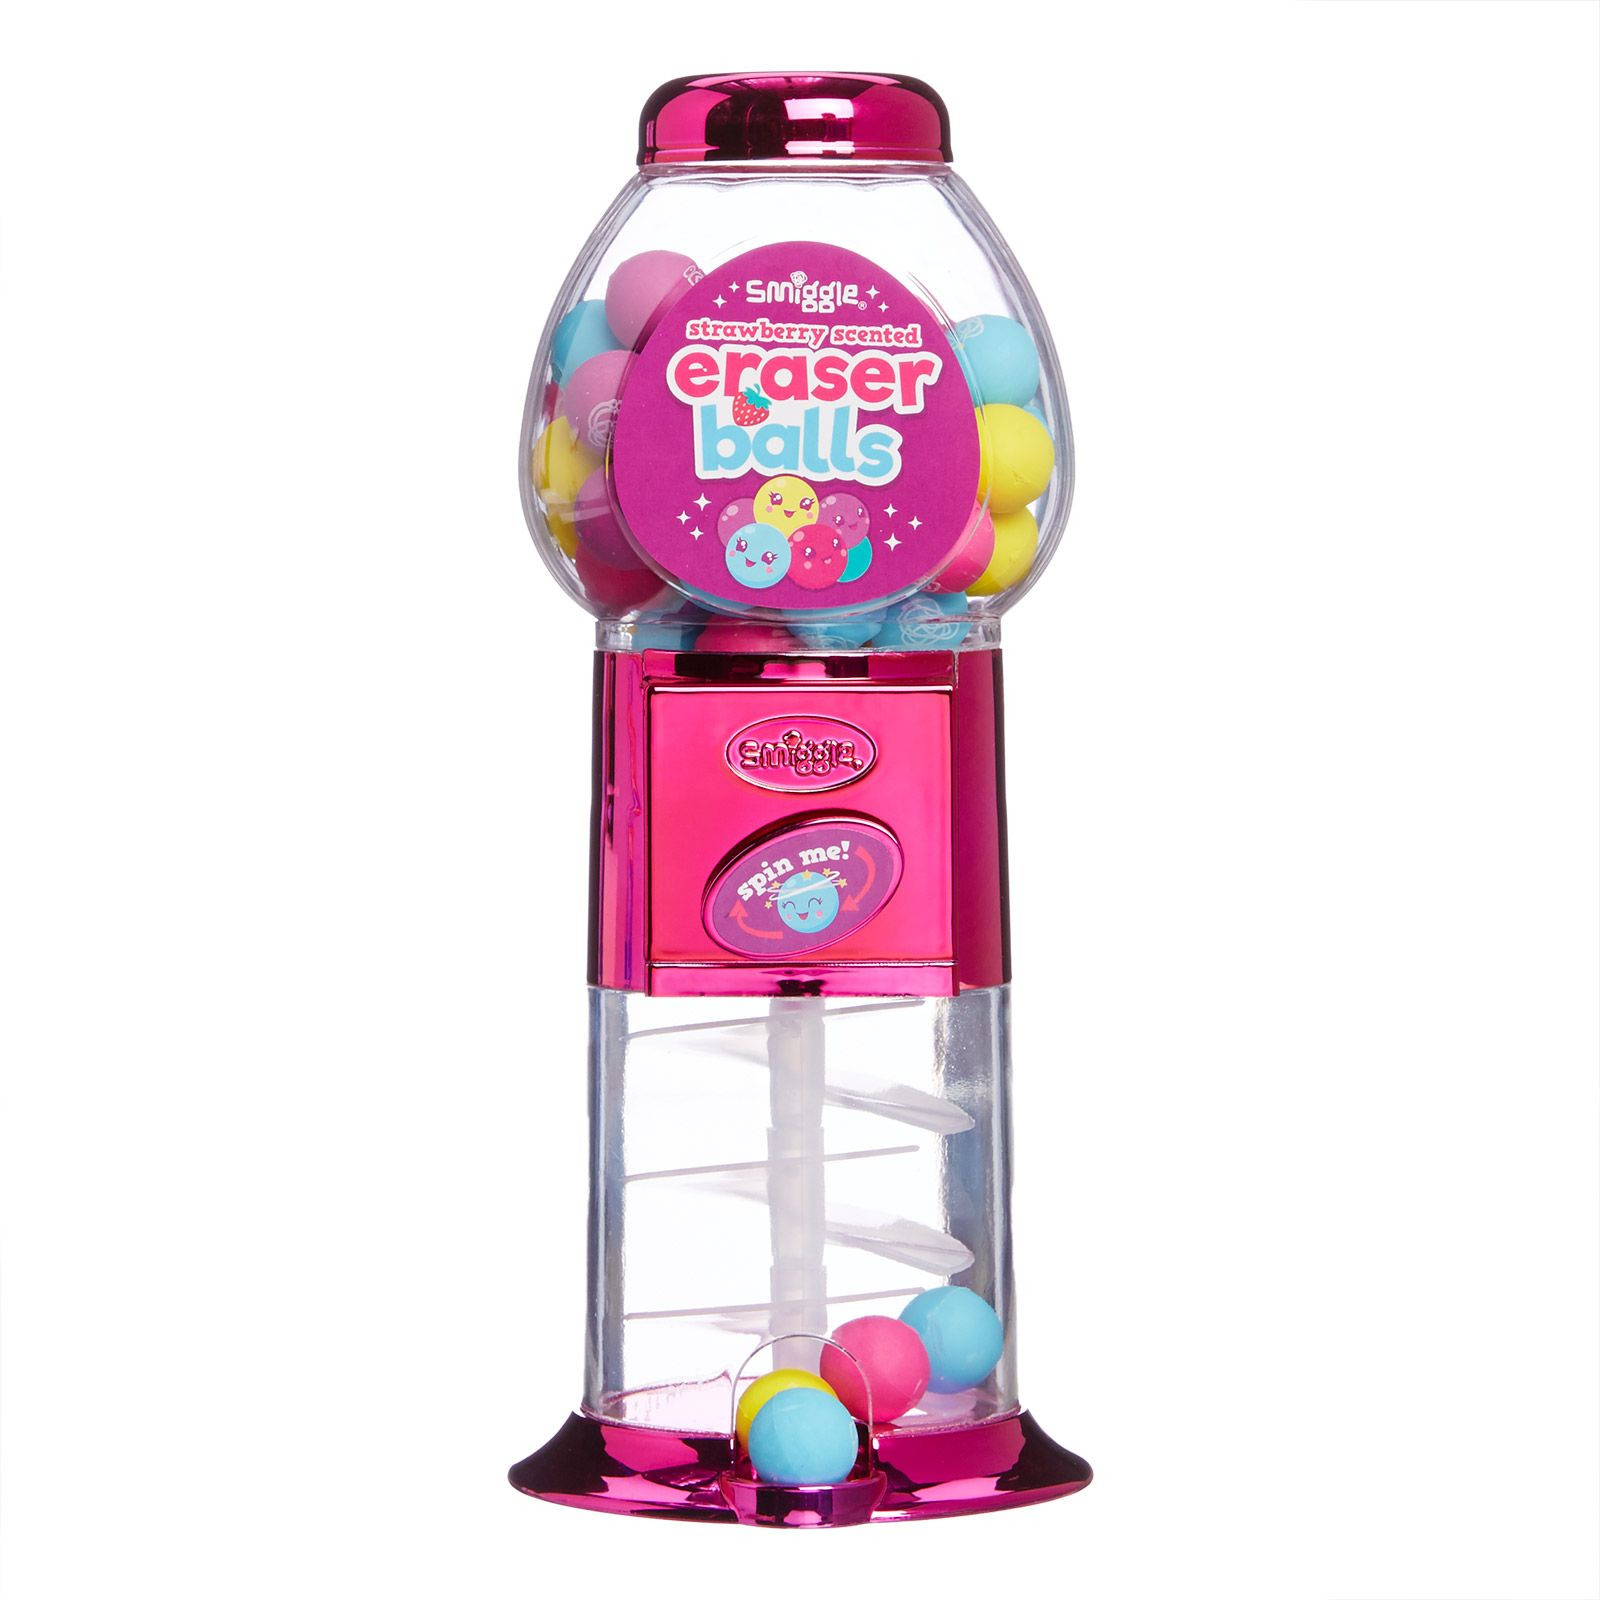 1600x1600 Bubble Gum Machine Drawing Gumball Images Stock Pictures